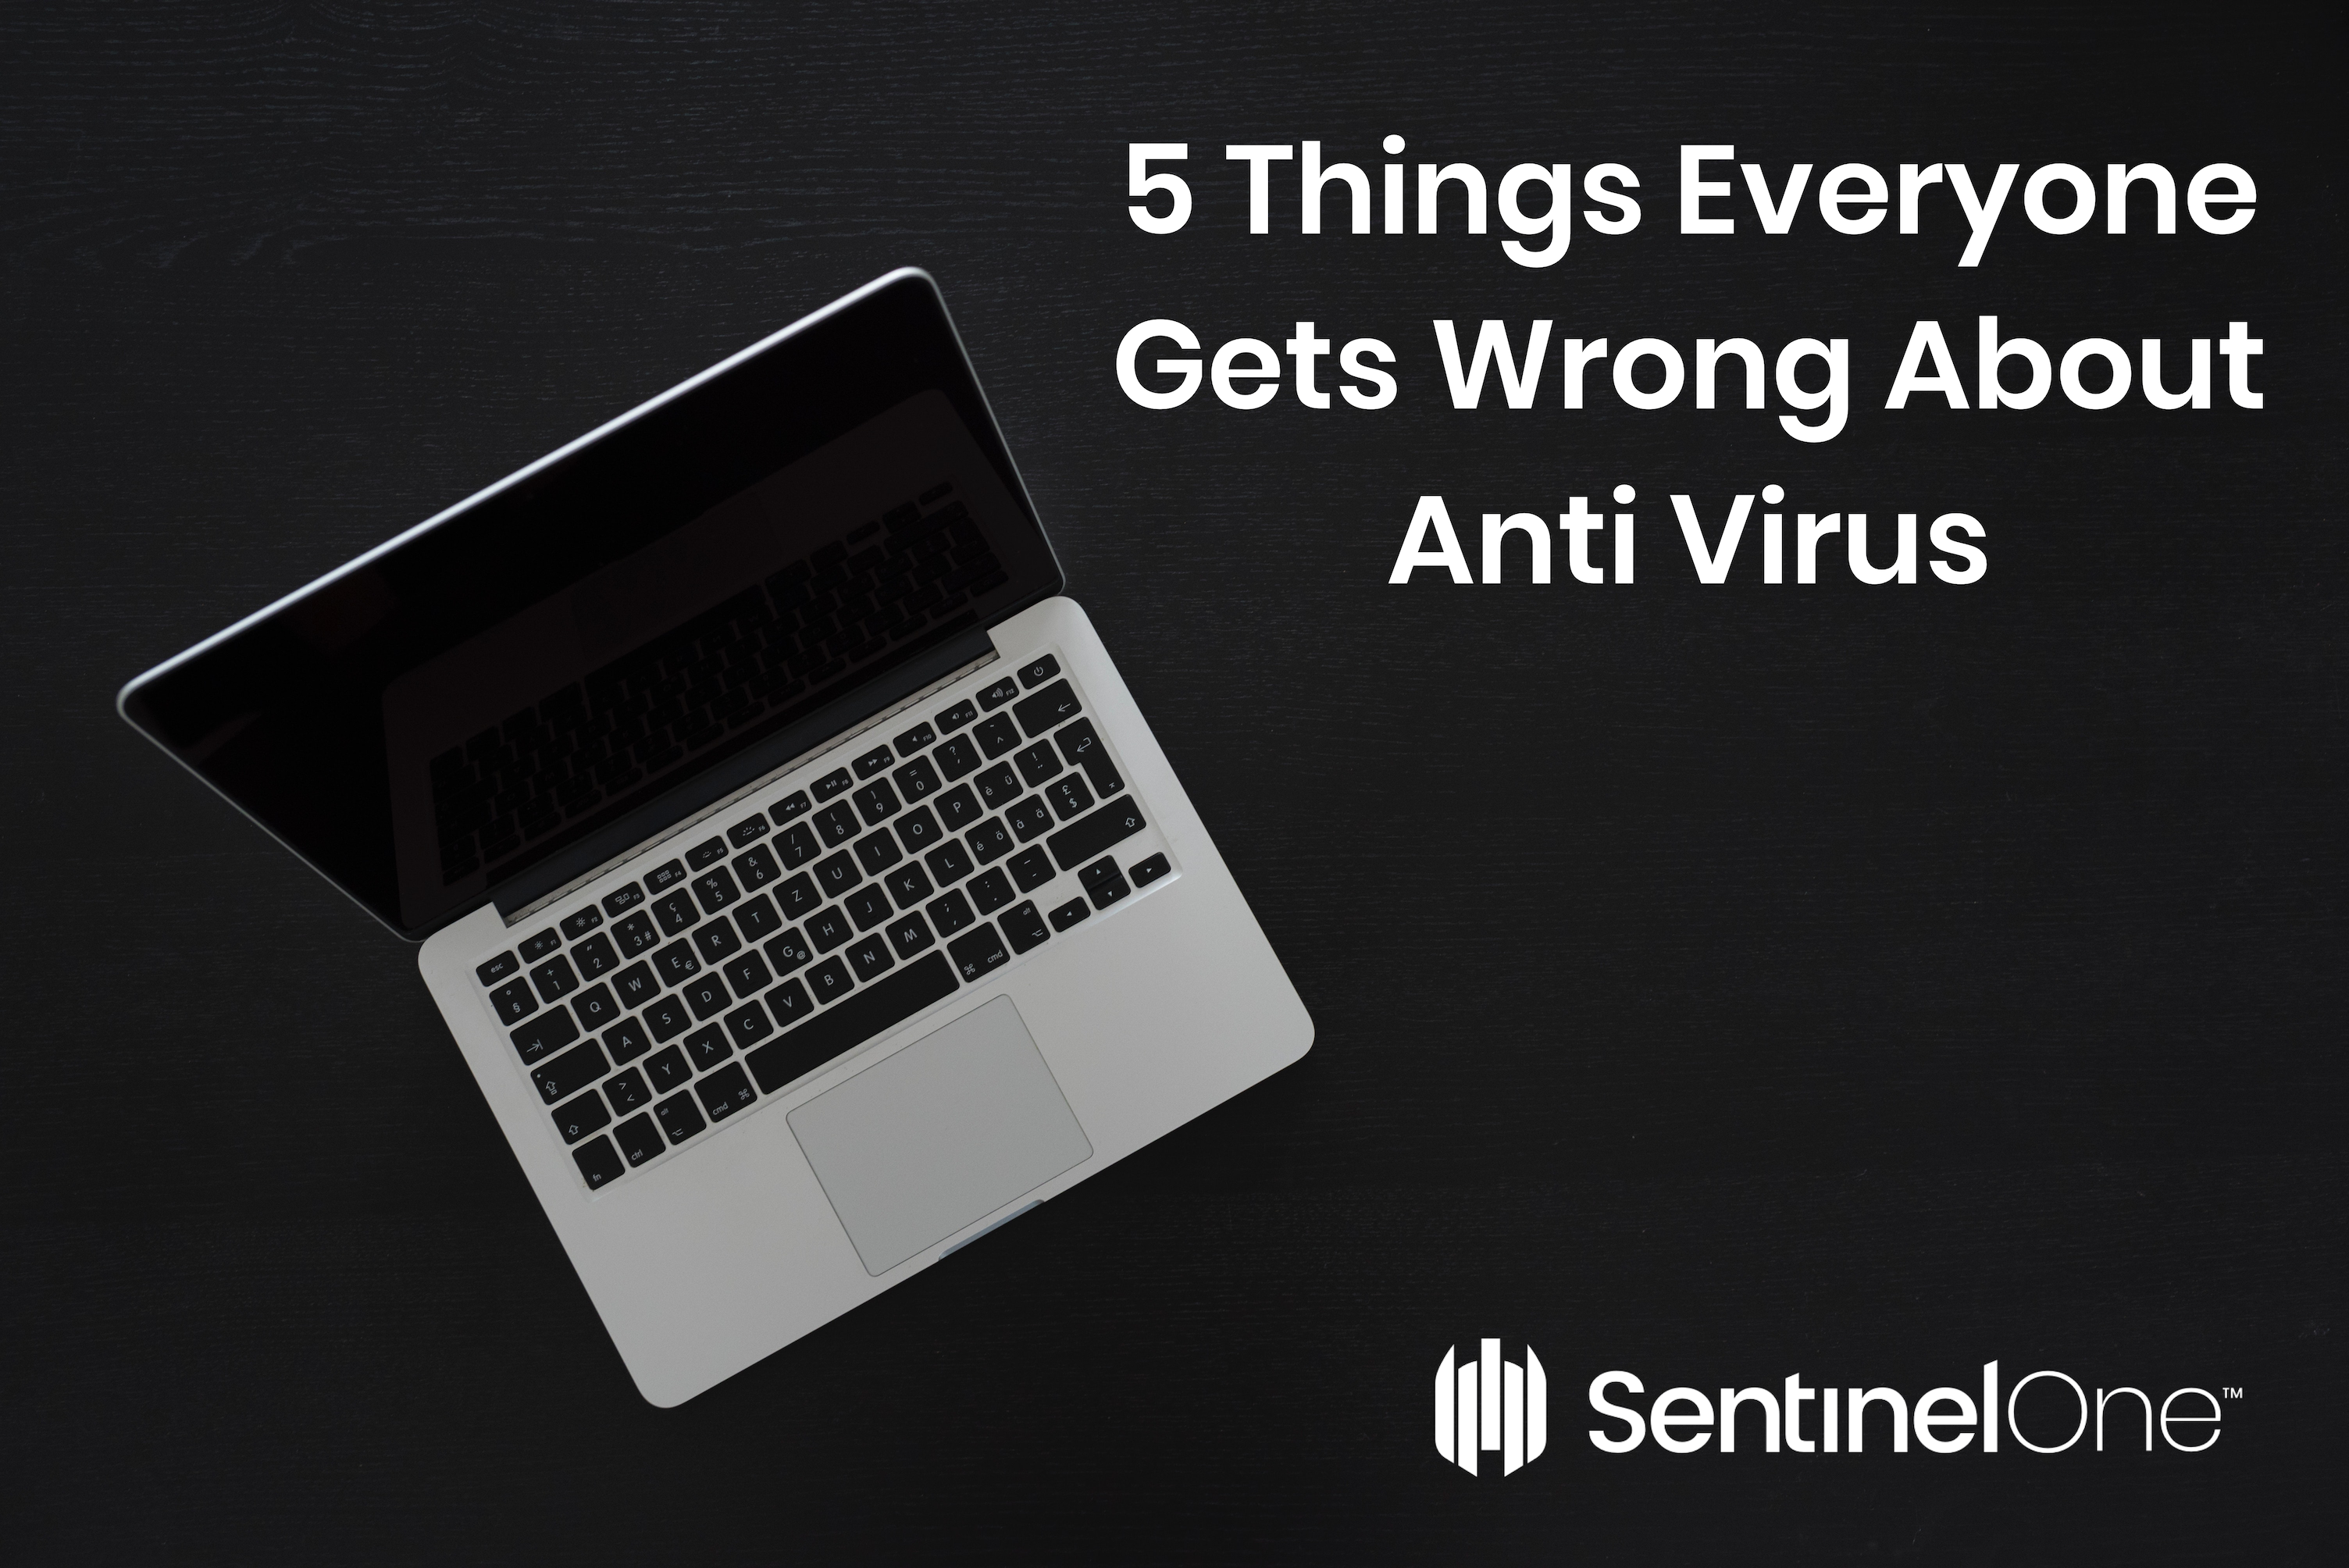 5 Things Everyone Gets Wrong About Anti-Virus